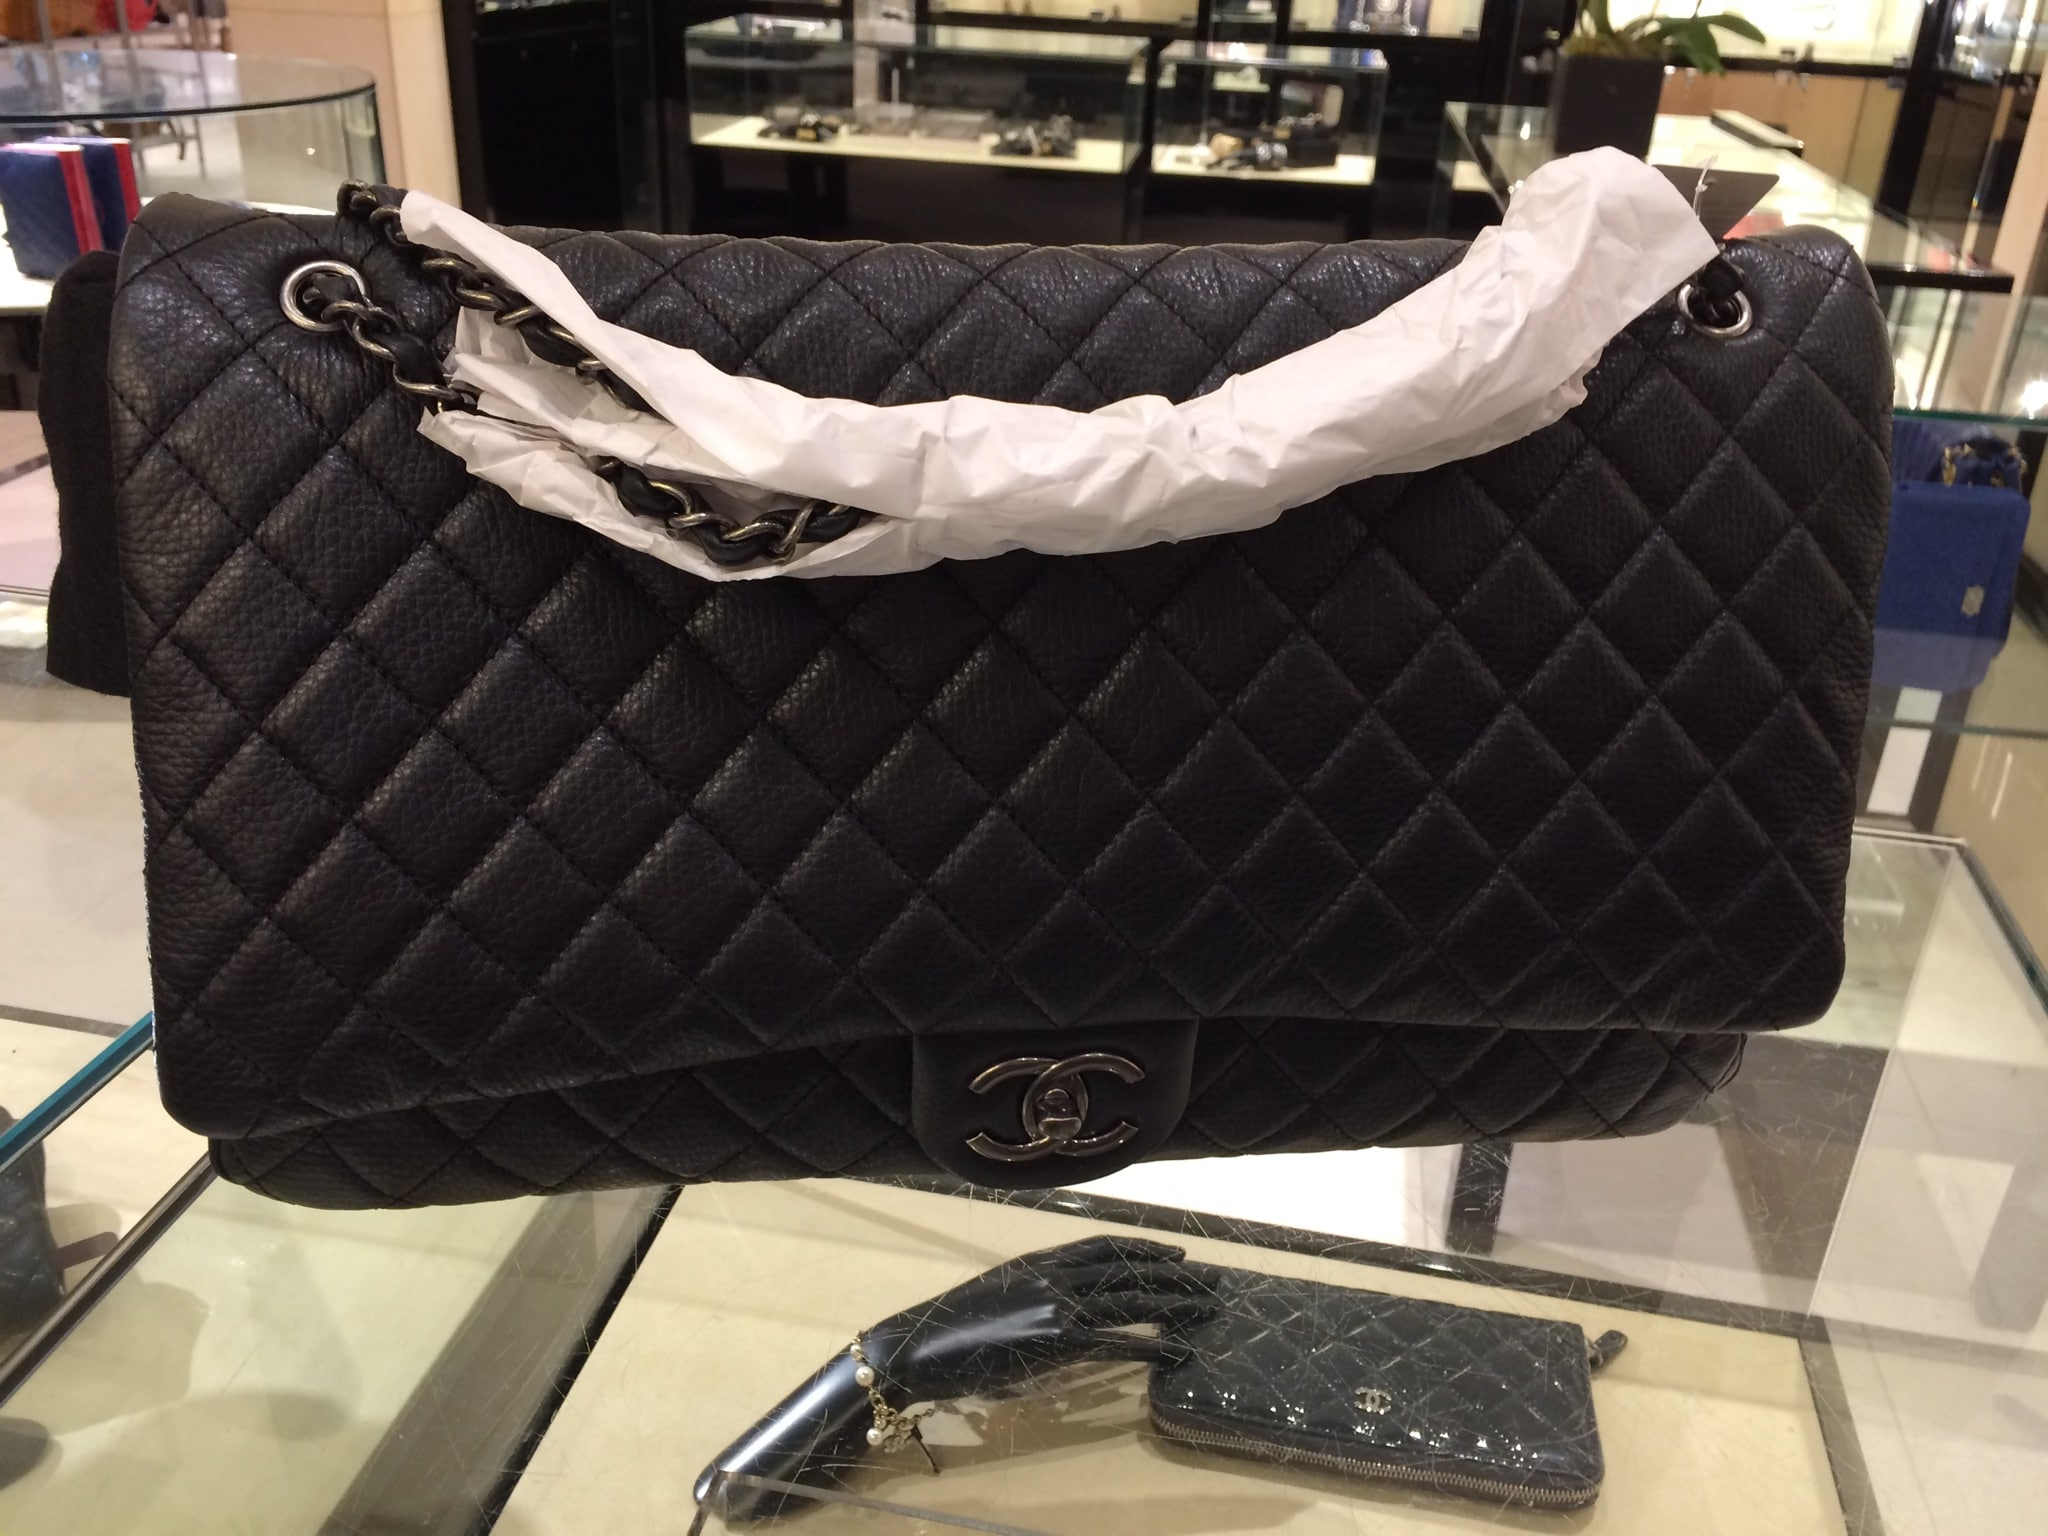 36a9f37969b4b5 Chanel XXL Flap Bag From Spring/Summer 2016 Act 2 Collection ...